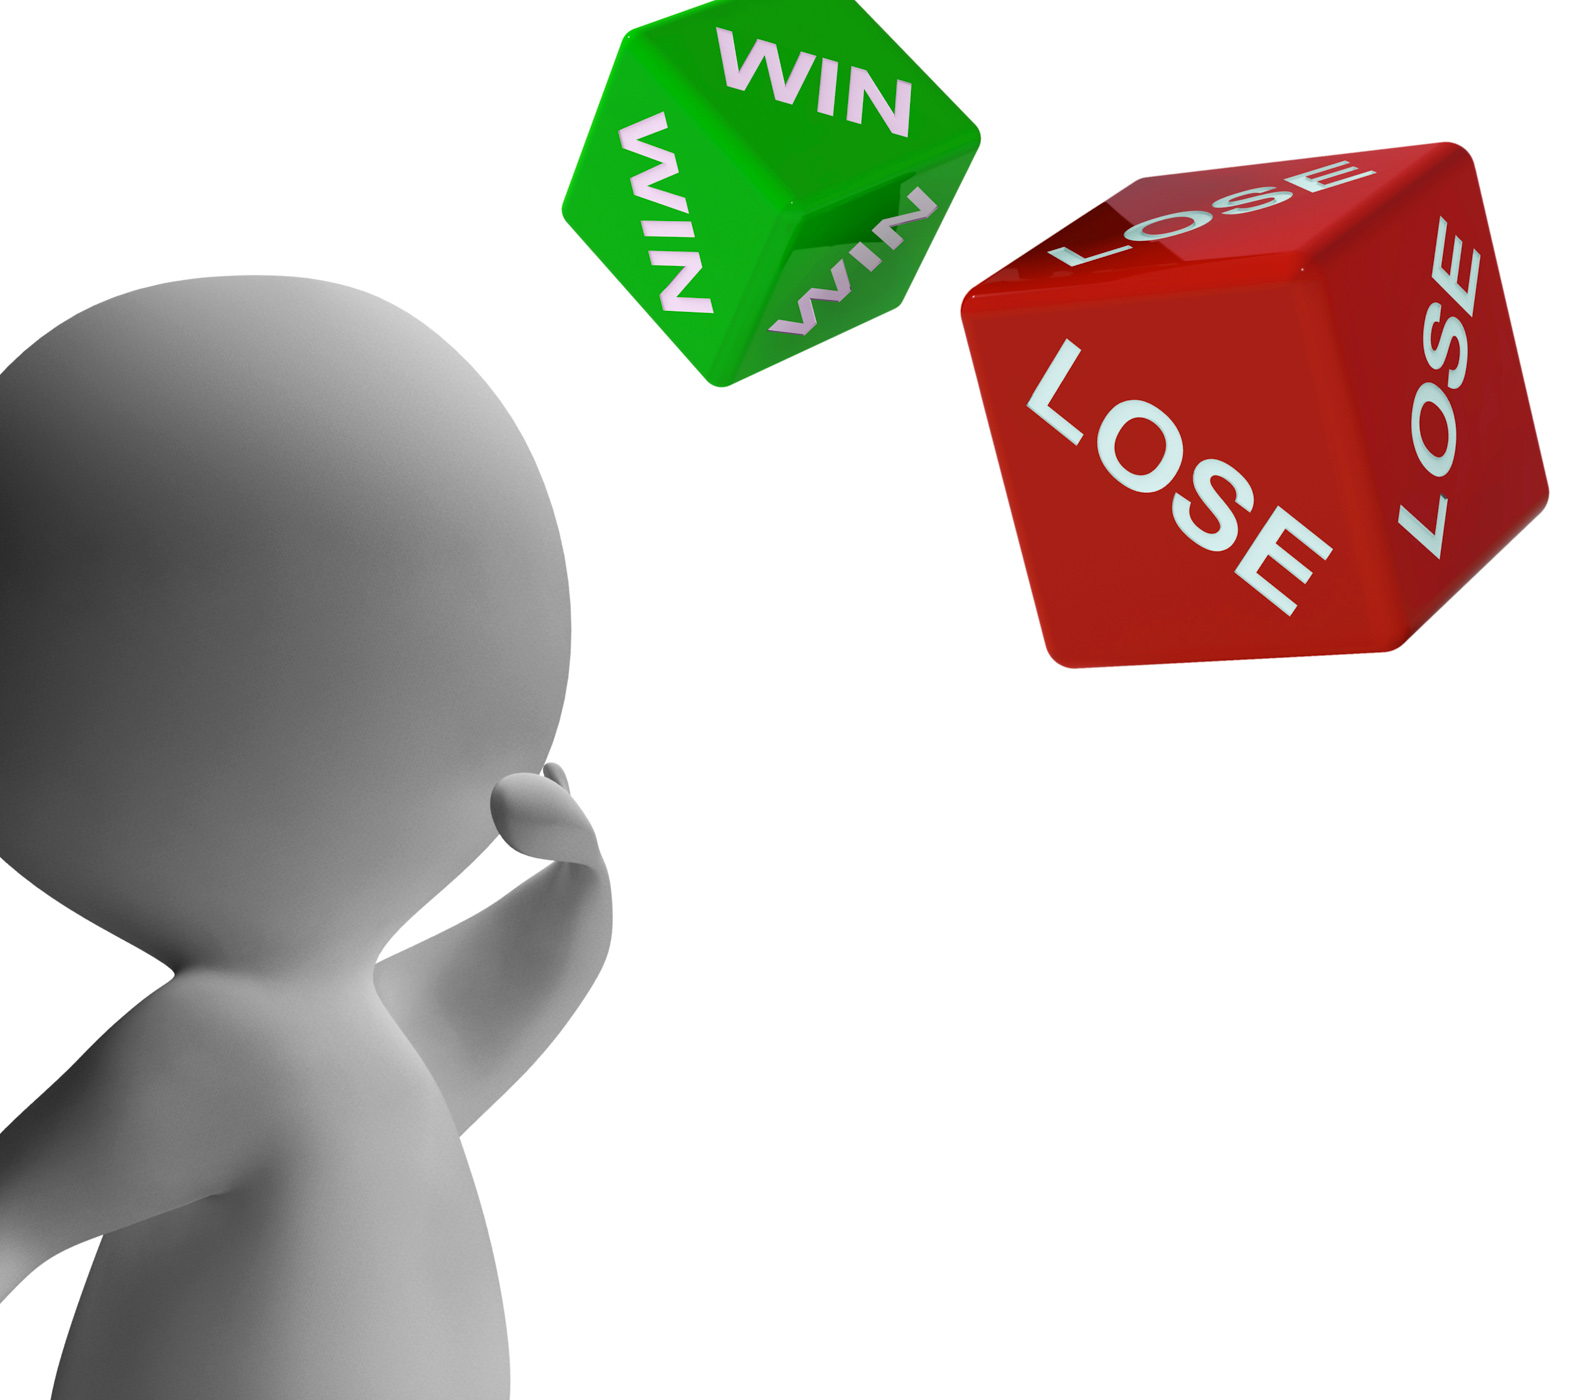 Win Lose Dice Shows Gambling, Payoff, Odds, Luck, Losing, HQ Photo